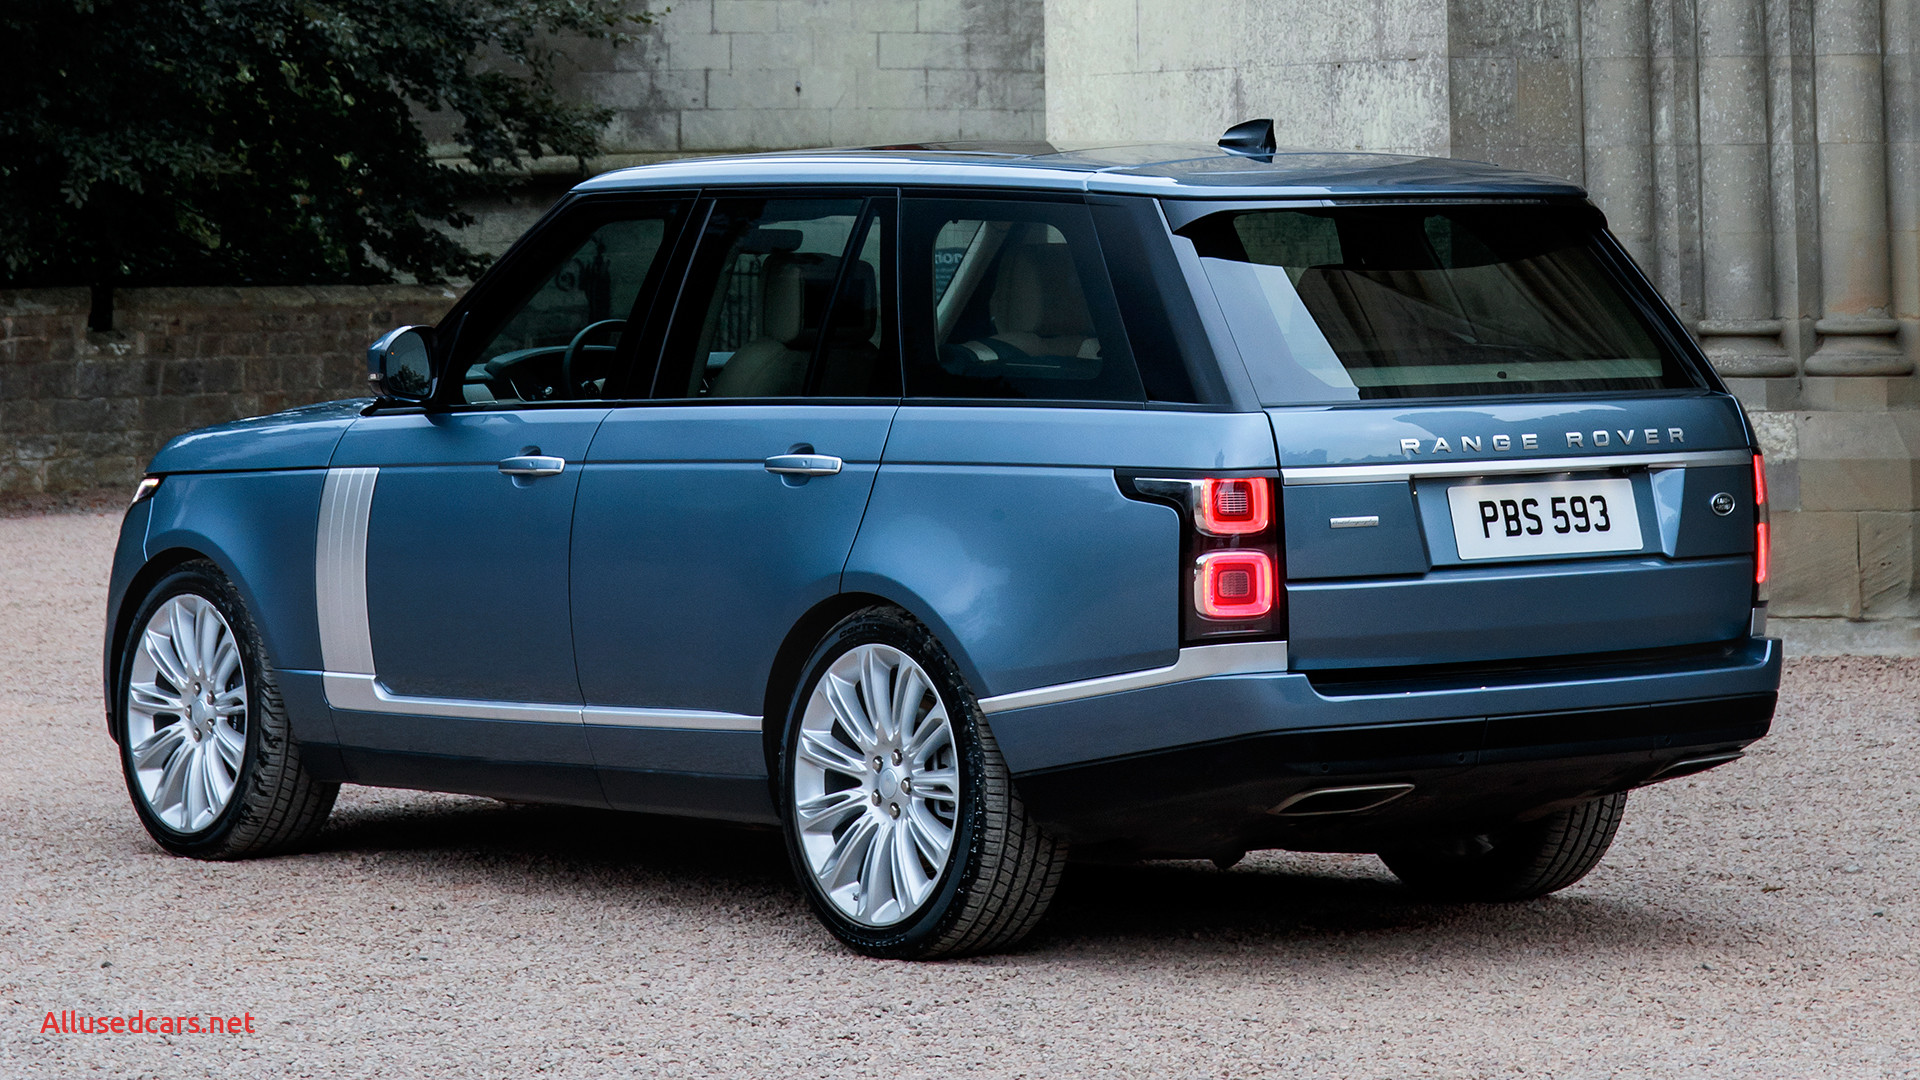 Range Rover 2012 Fresh Land Rover Range Rover Vogue Used Cars for Sale On Auto